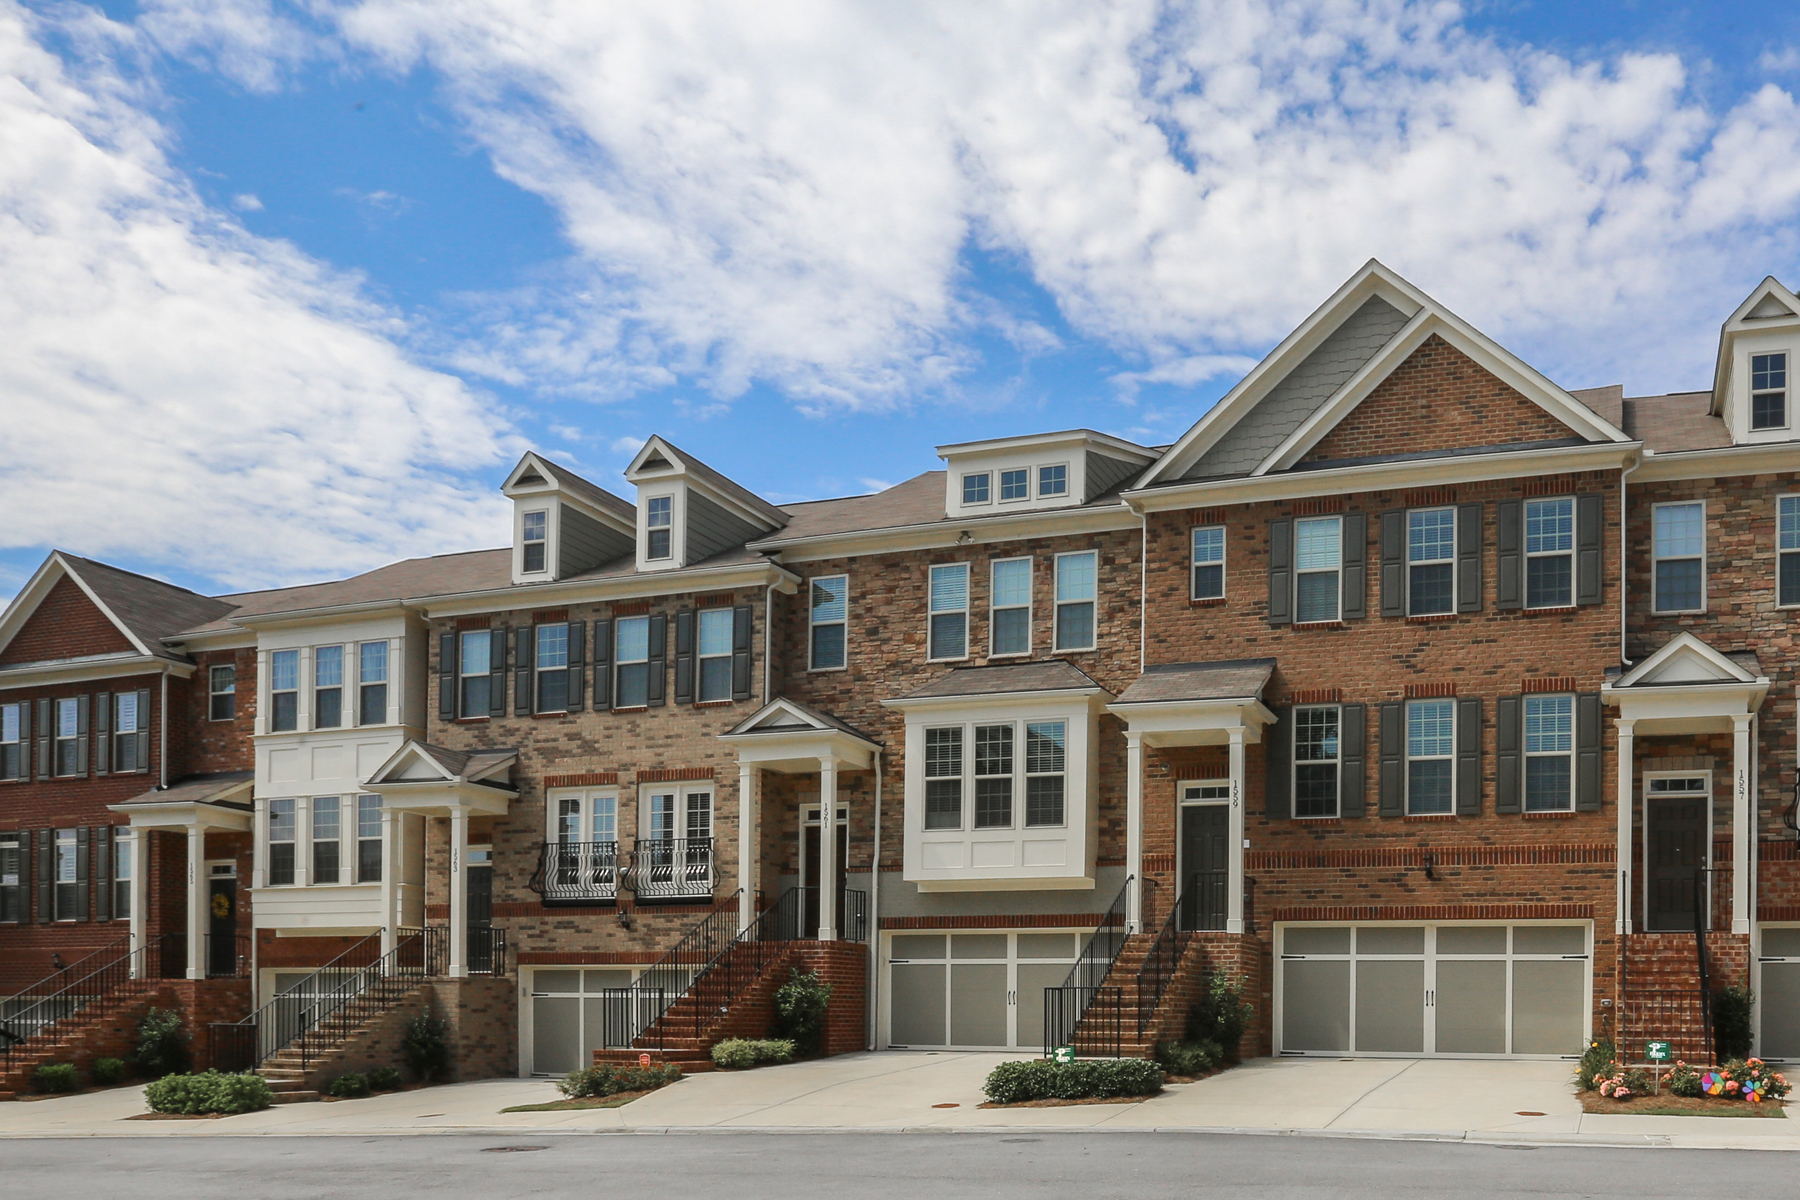 Townhouse for Sale at Traditional Townhome With Many Upgrades And Extras 1561 Brooksbank Drive Brookhaven, Georgia 30319 United States